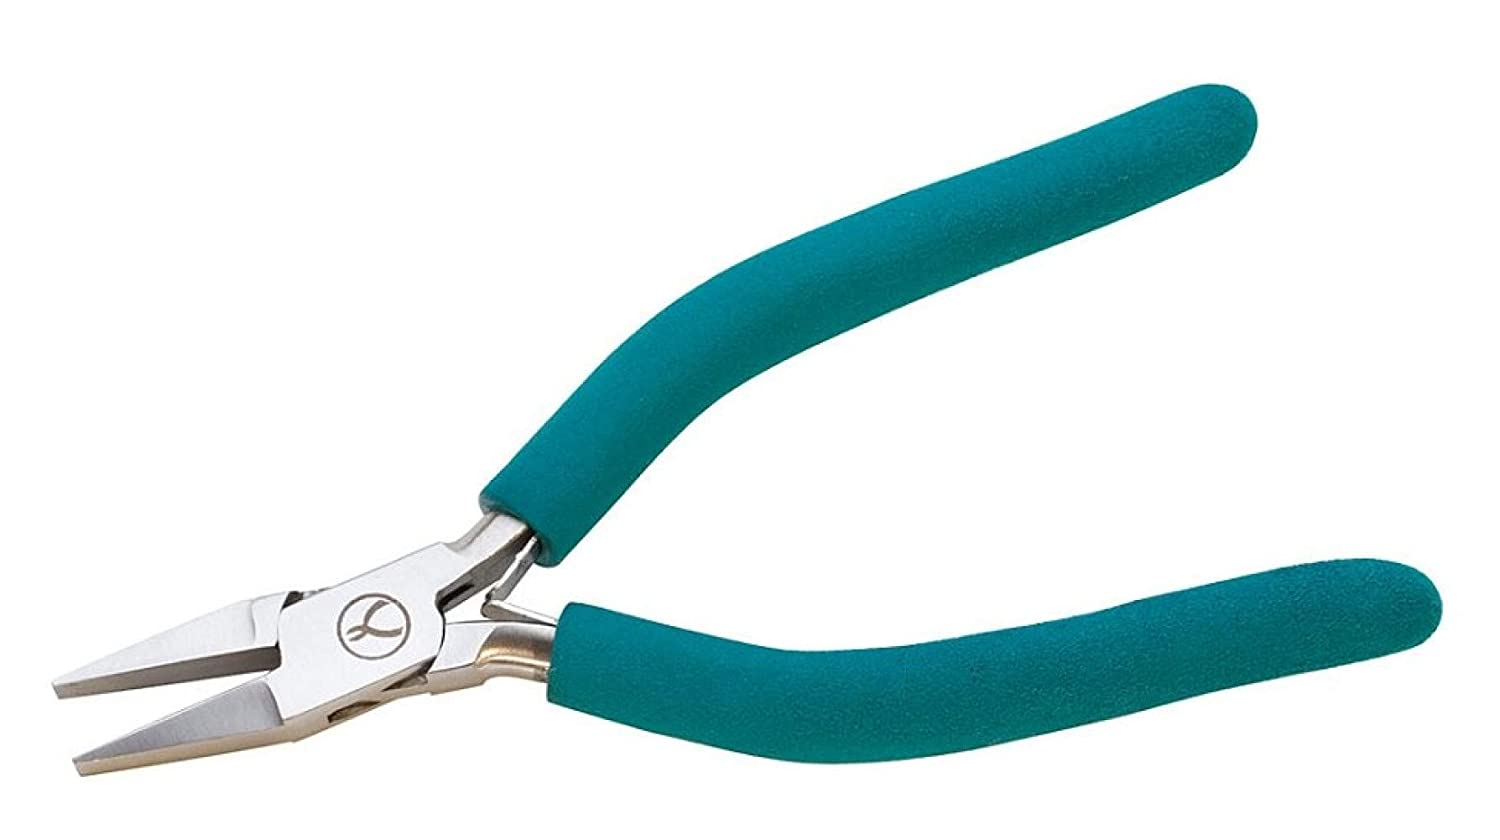 Wubbers Medium Flat Nose Pliers 6 1/2